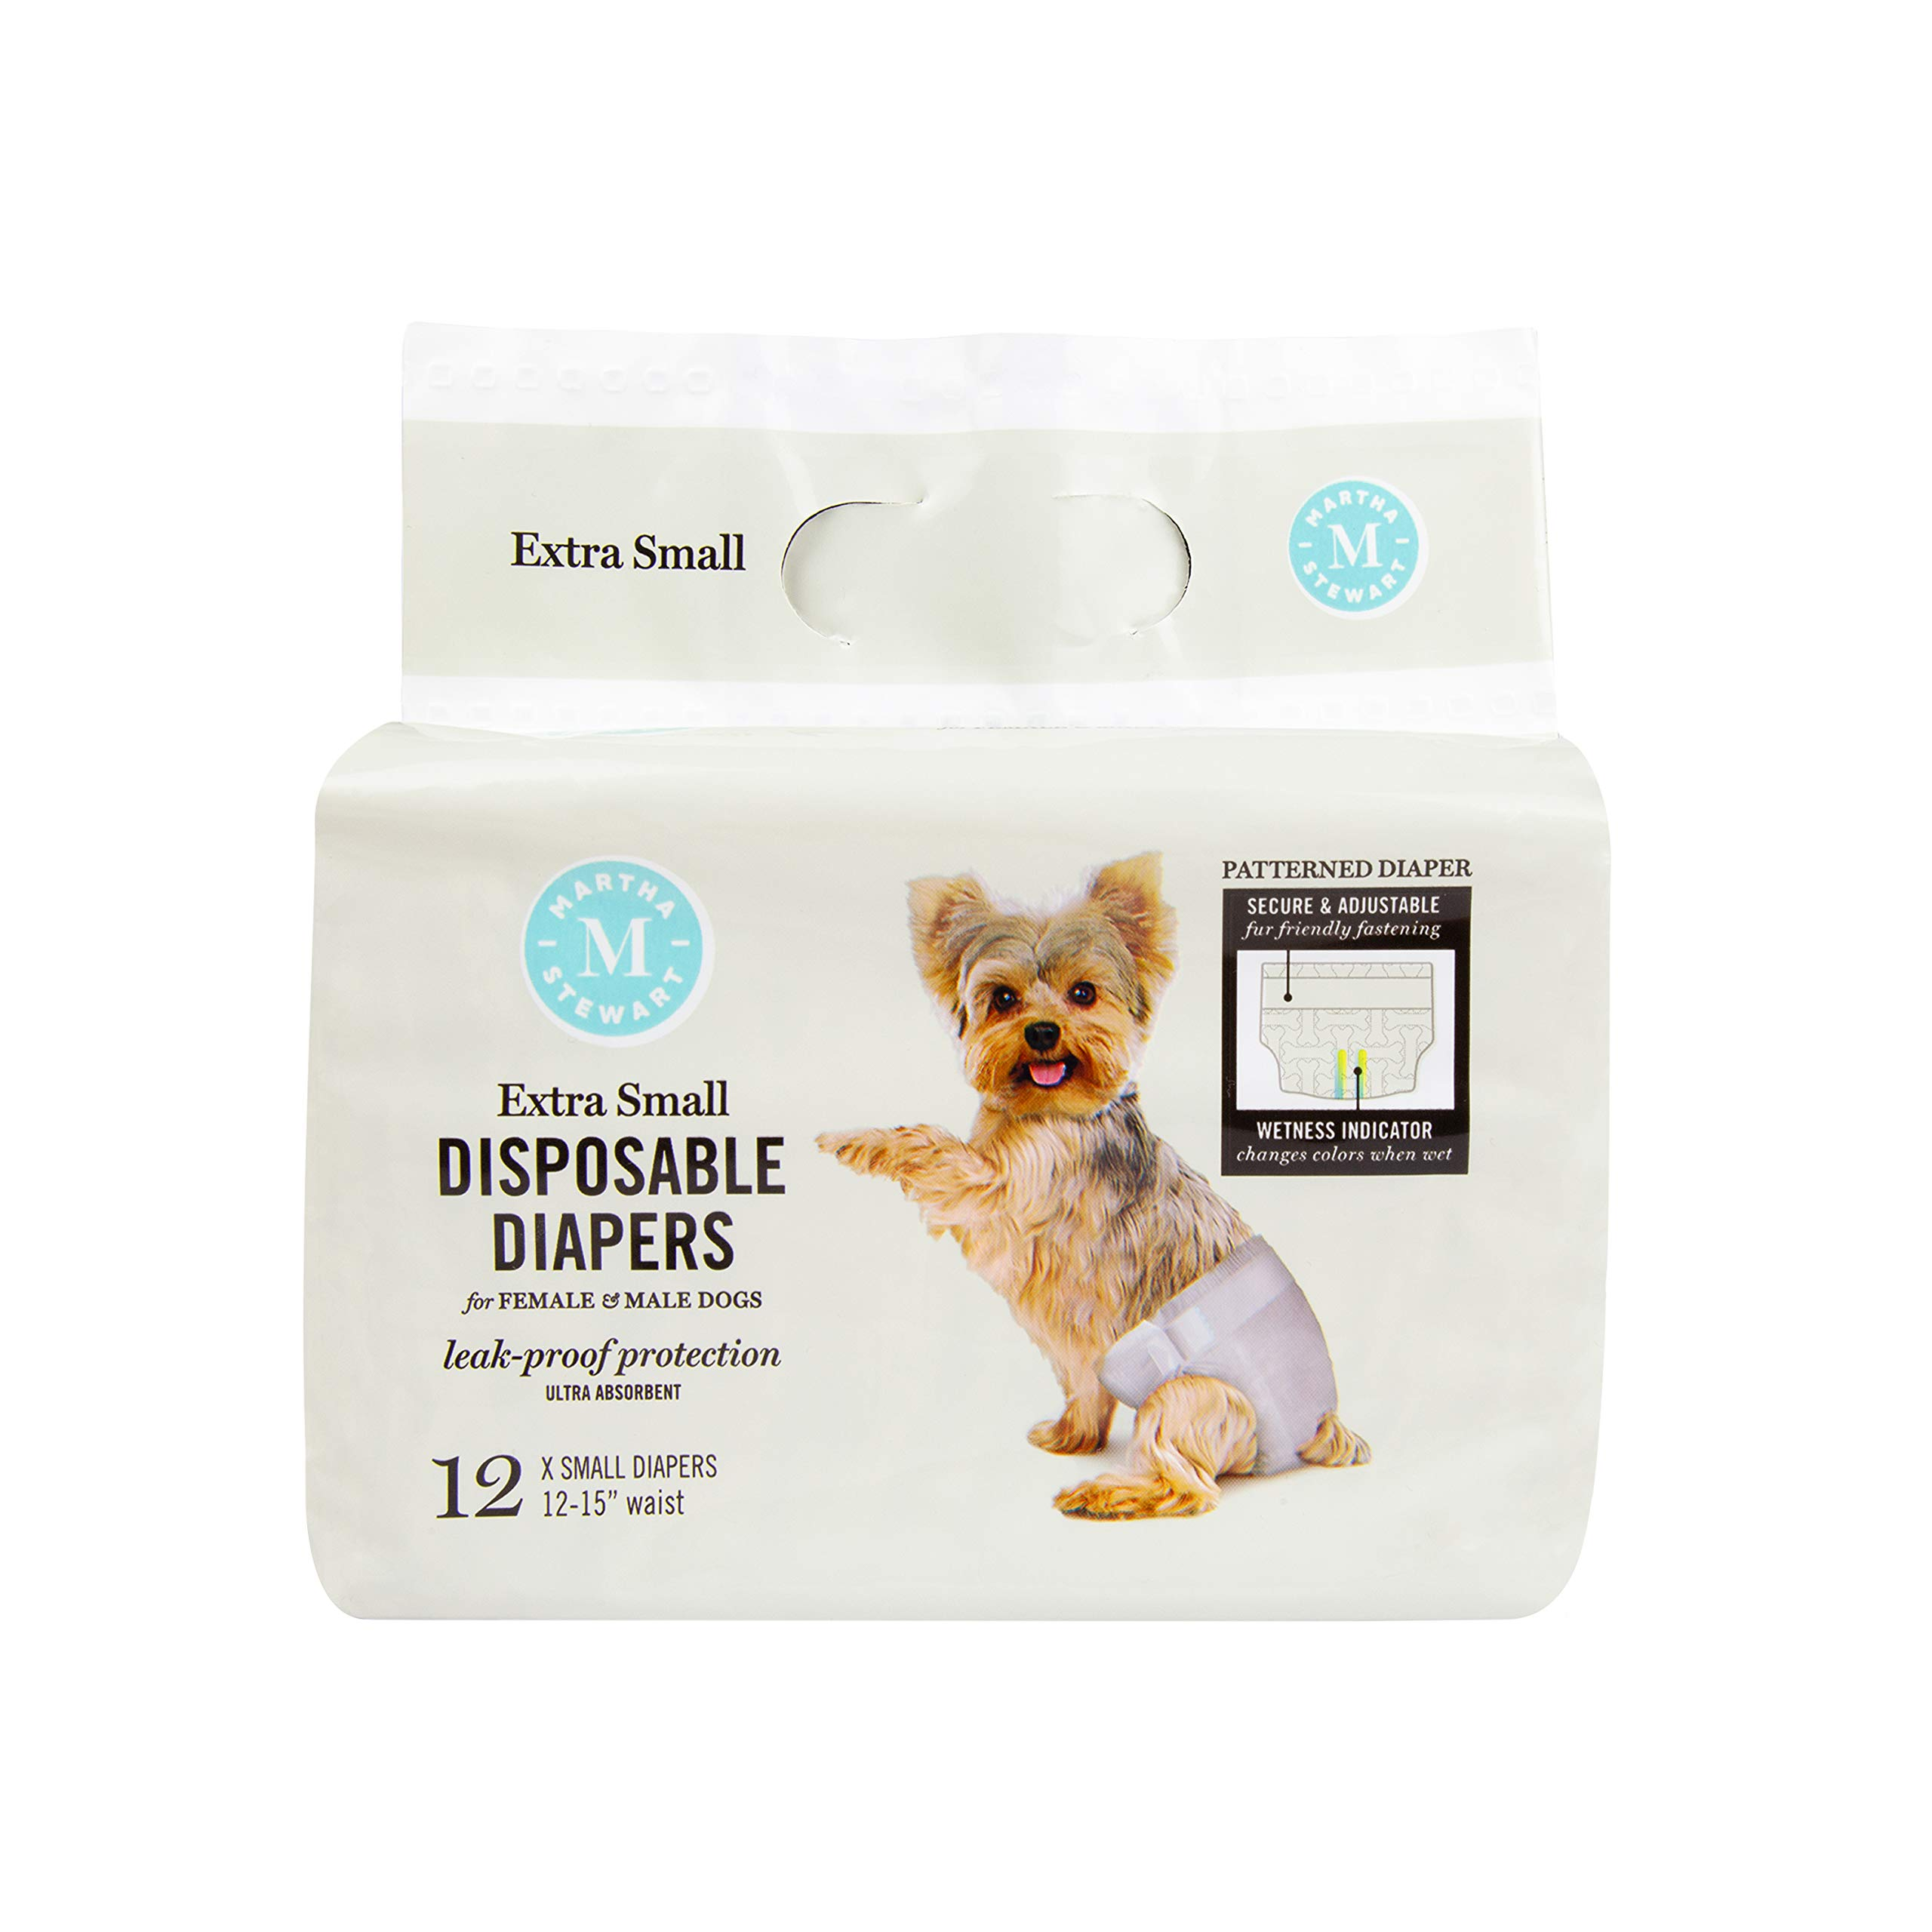 Martha Stewart for Pets Dog Diapers and Wraps | Disposable Male and Female Dog Diapers, 12 Count | Leakproof and Absorbent Dog Diapers